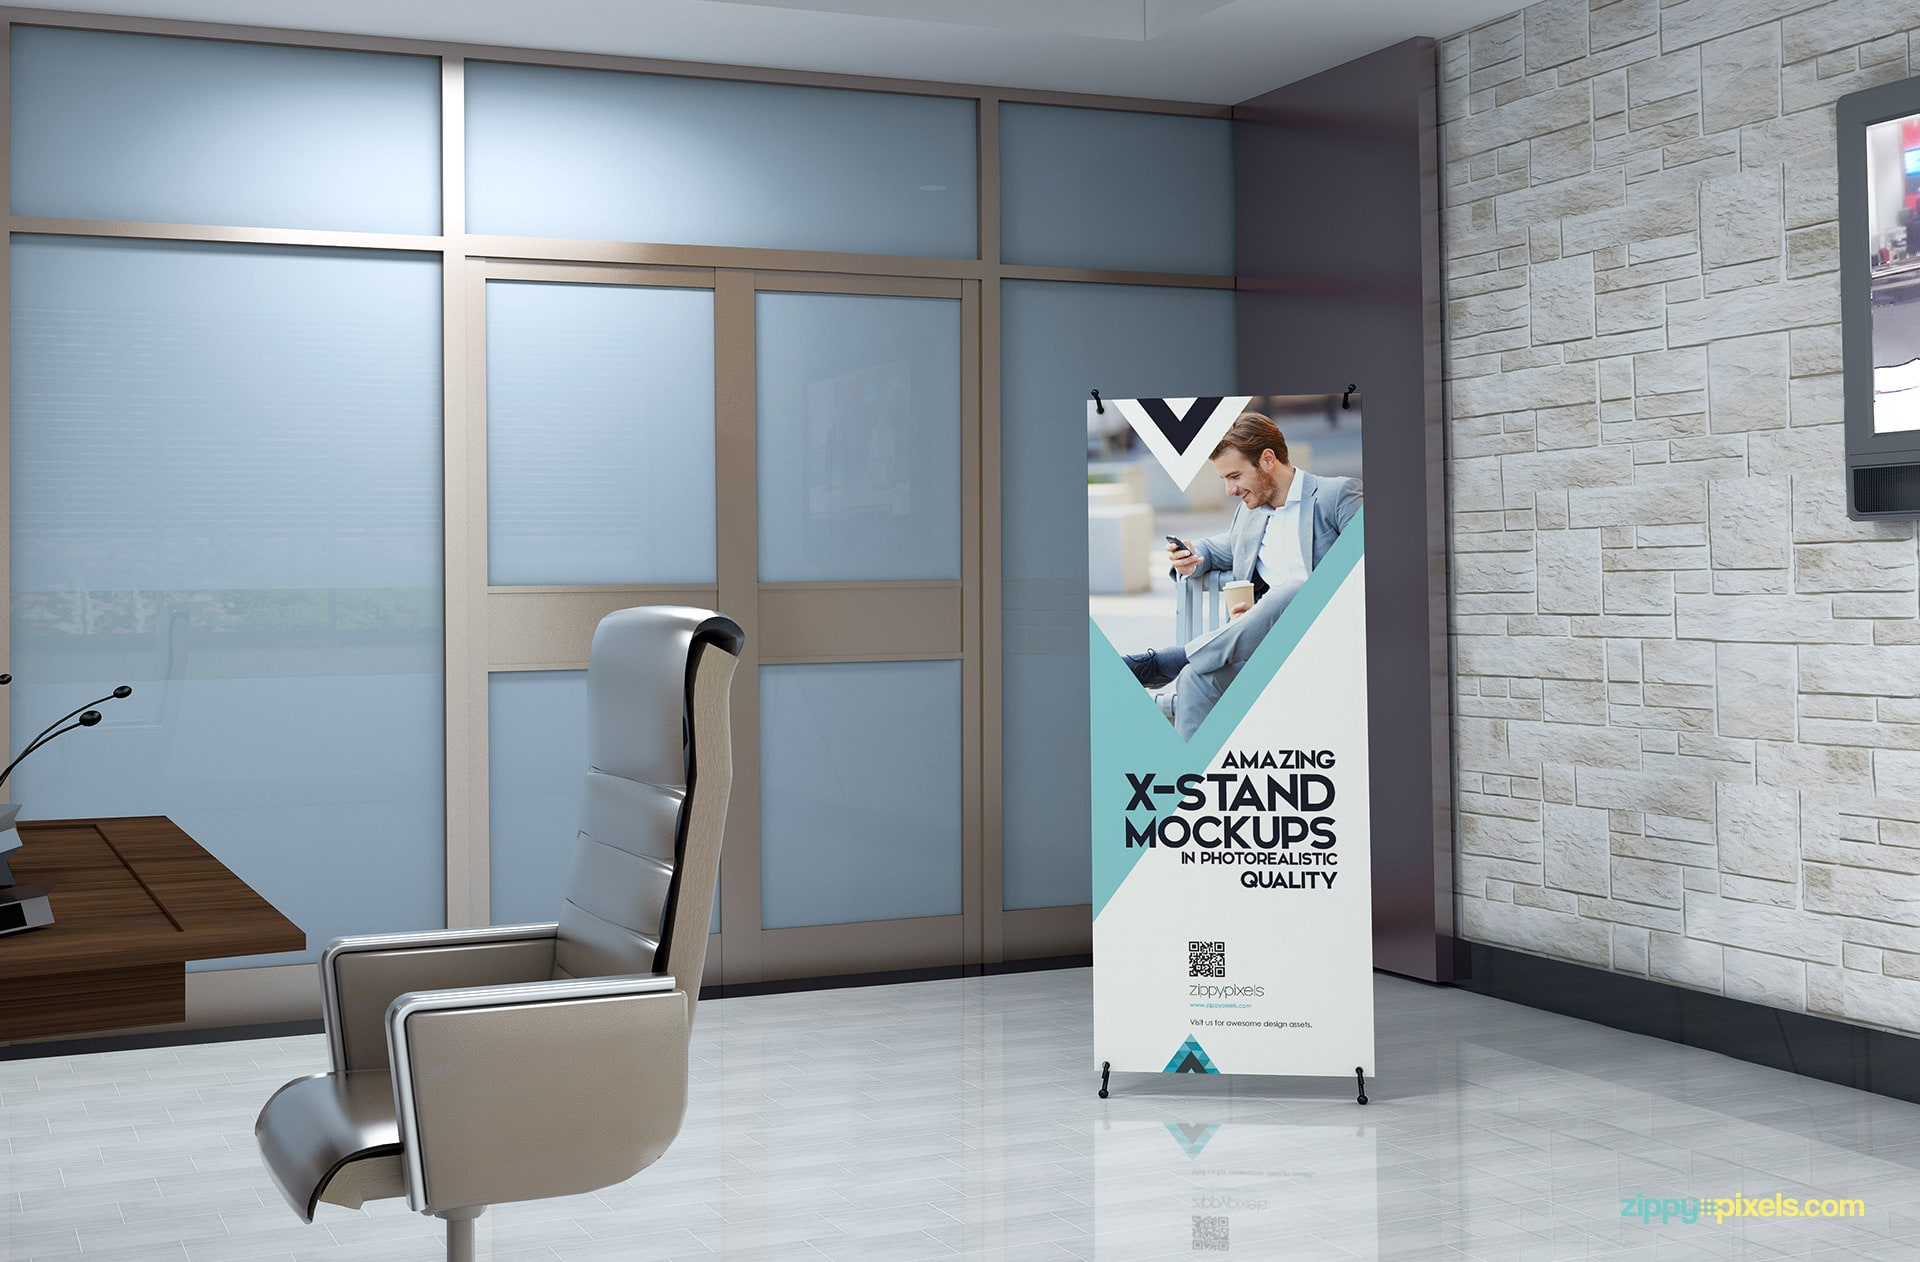 Top-notch x-banner mockups to make your design replacments easy.